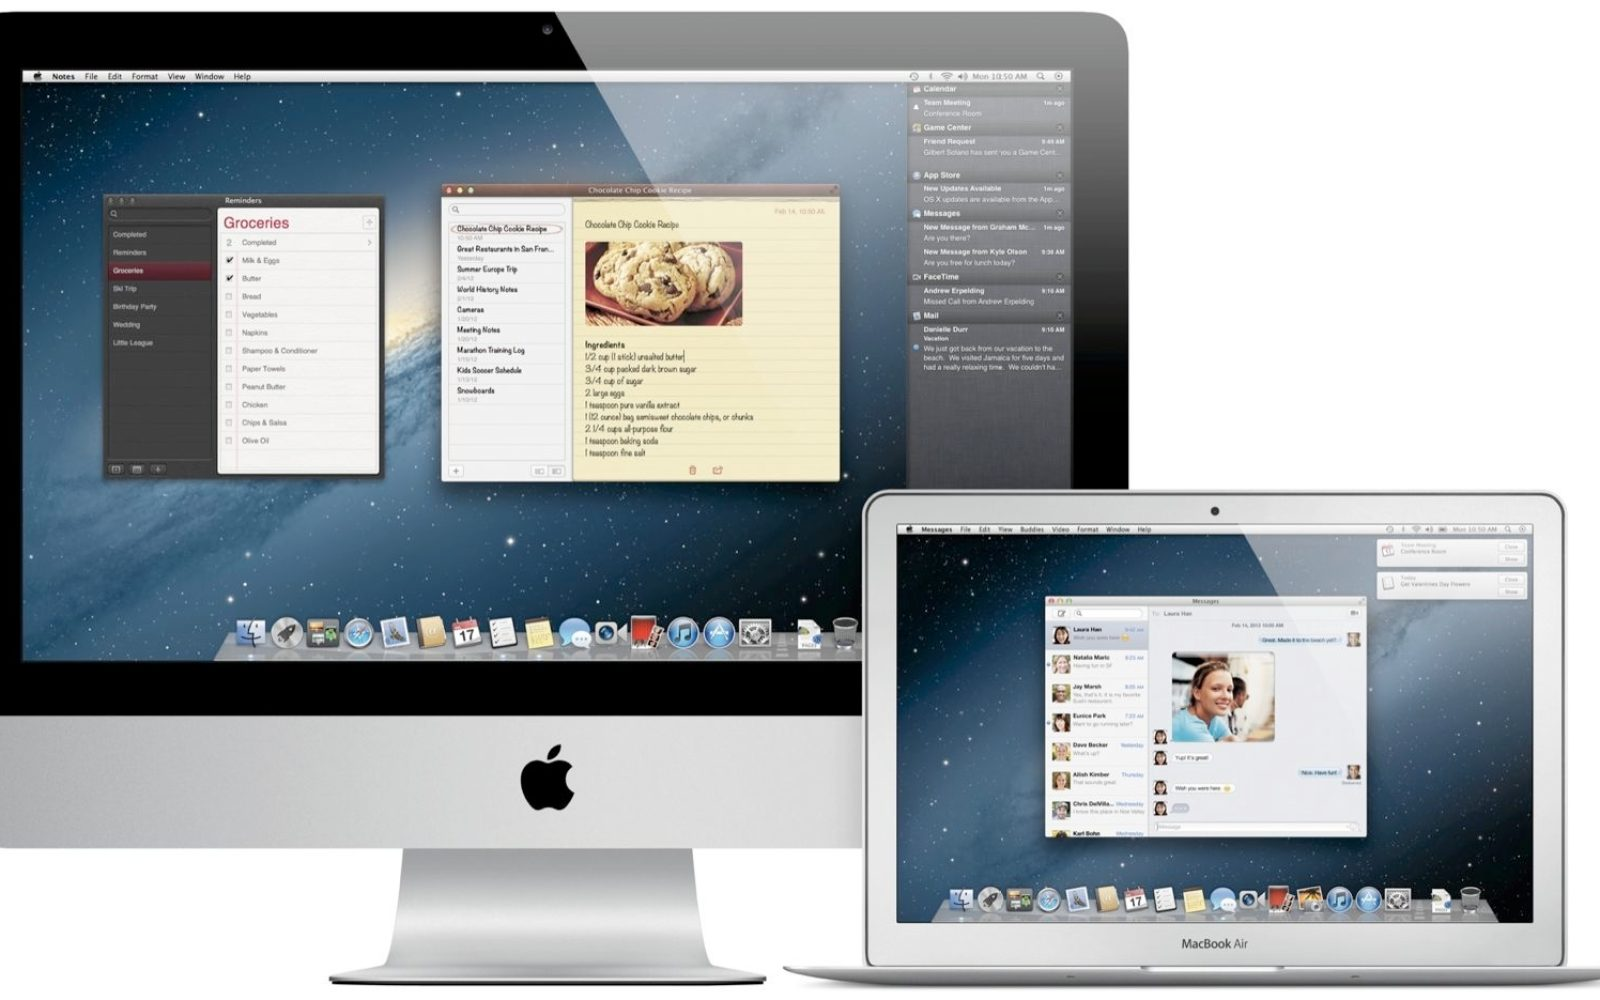 apple quicktime player download chip